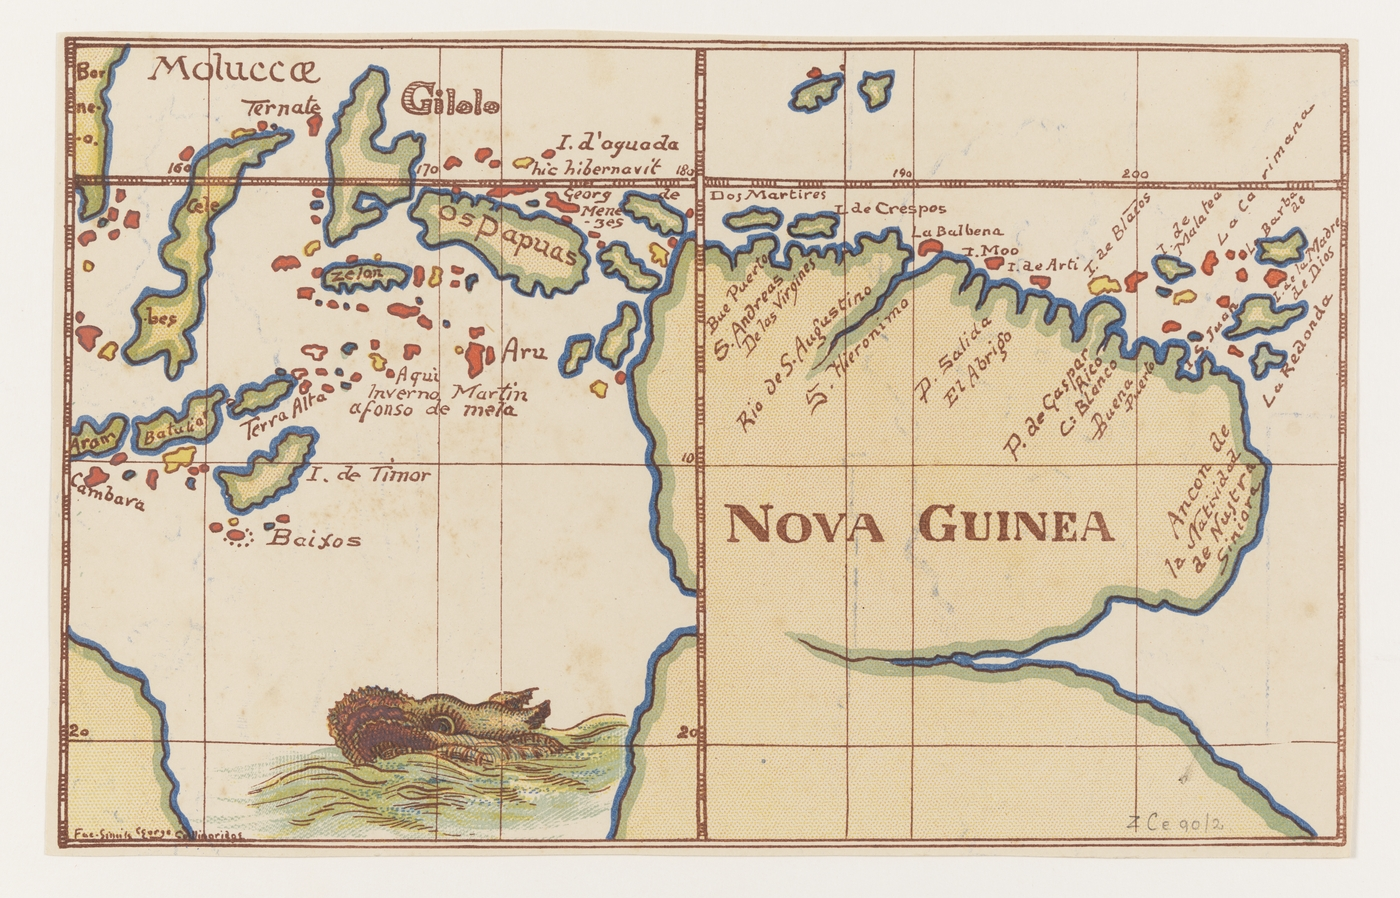 Nova Guinea [cartographic material] : [from a map of the world, 1600 ...